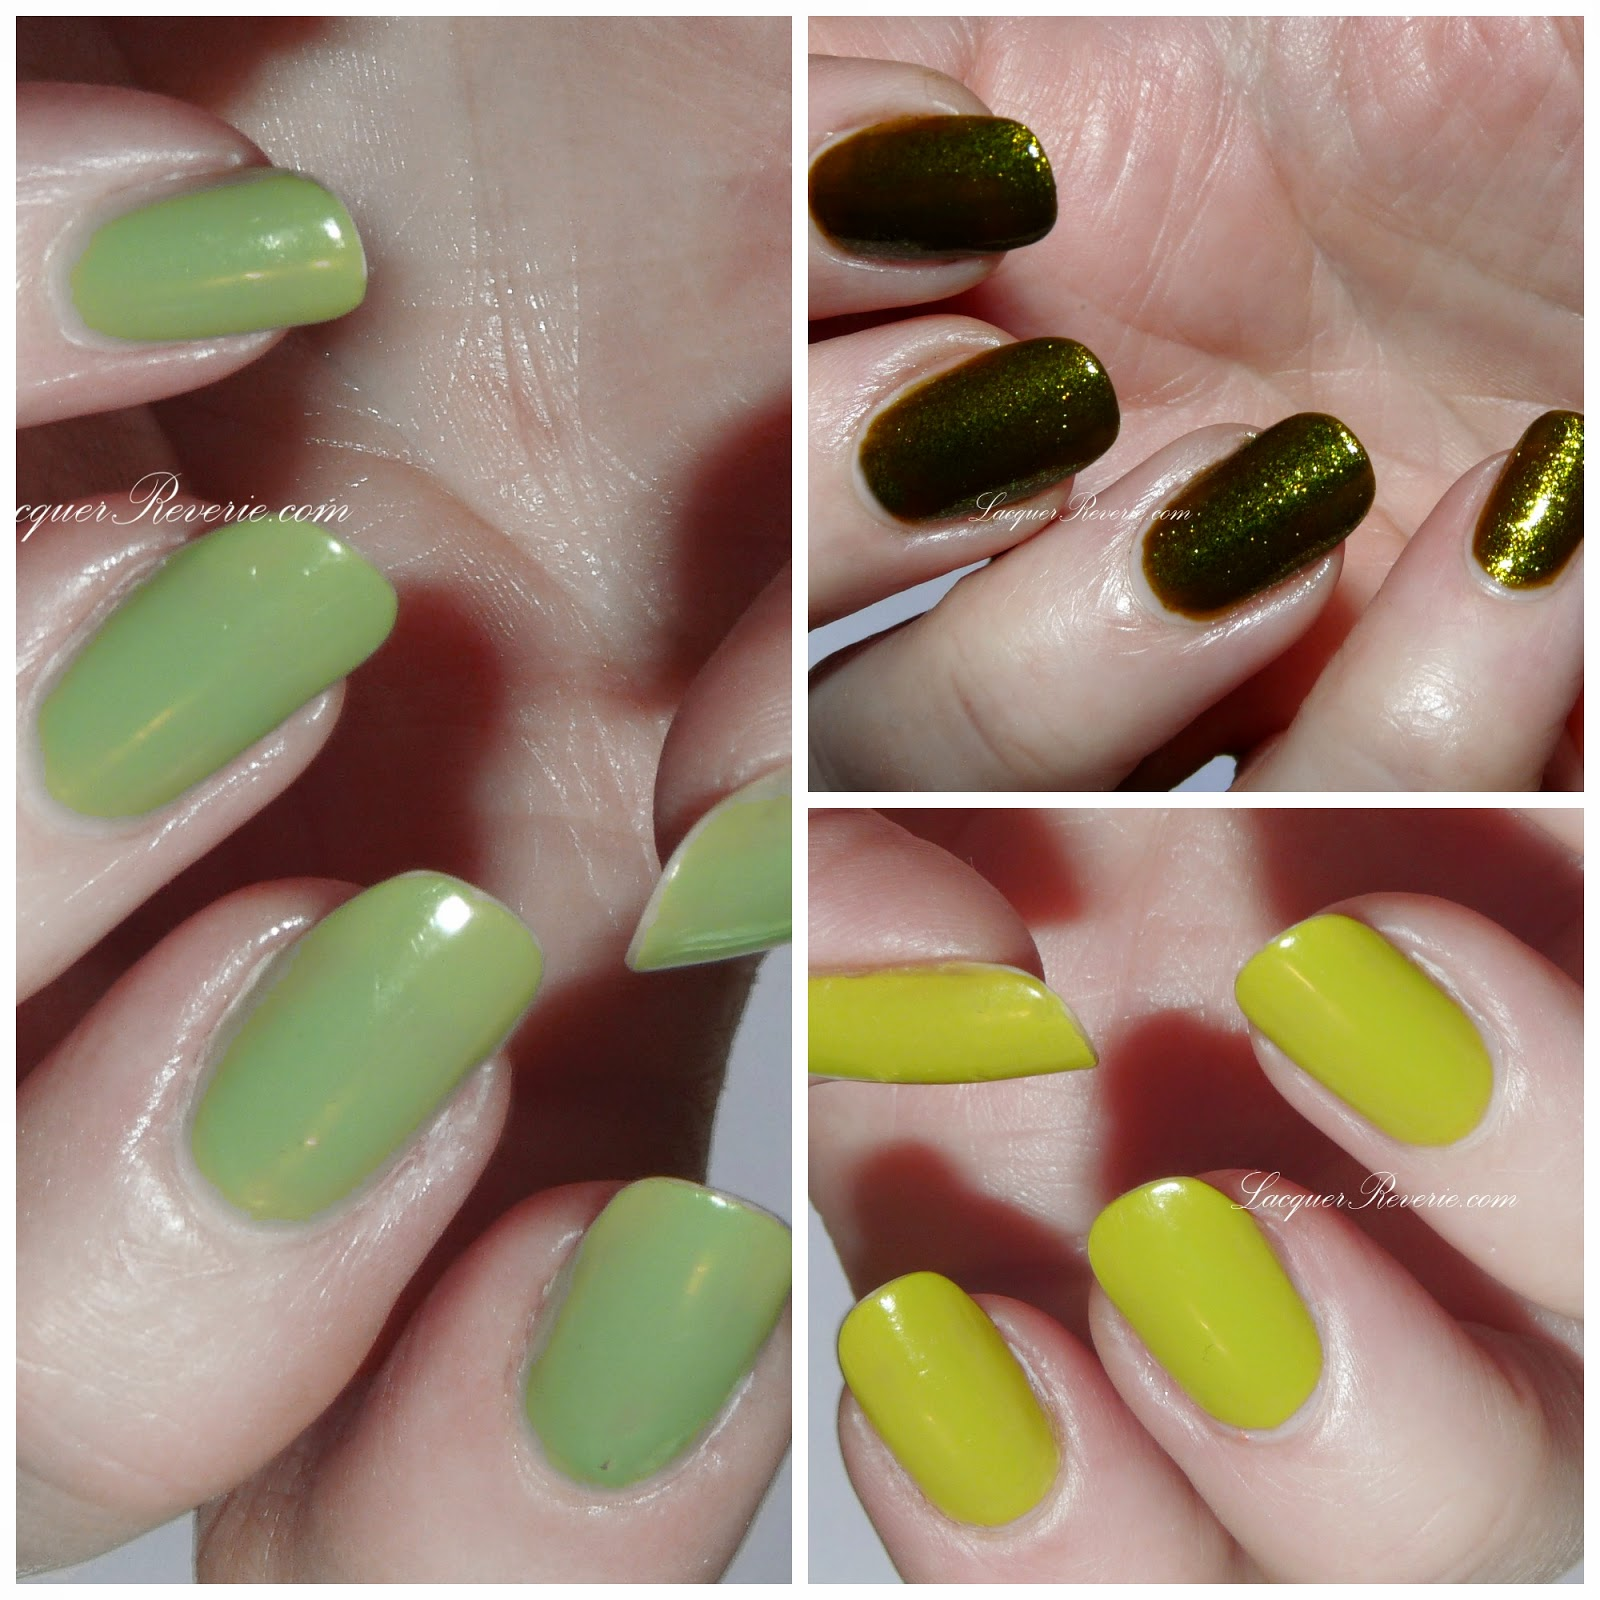 Lacquer Reverie: A Disturbing Green Post: Nicole by OPI and Orly